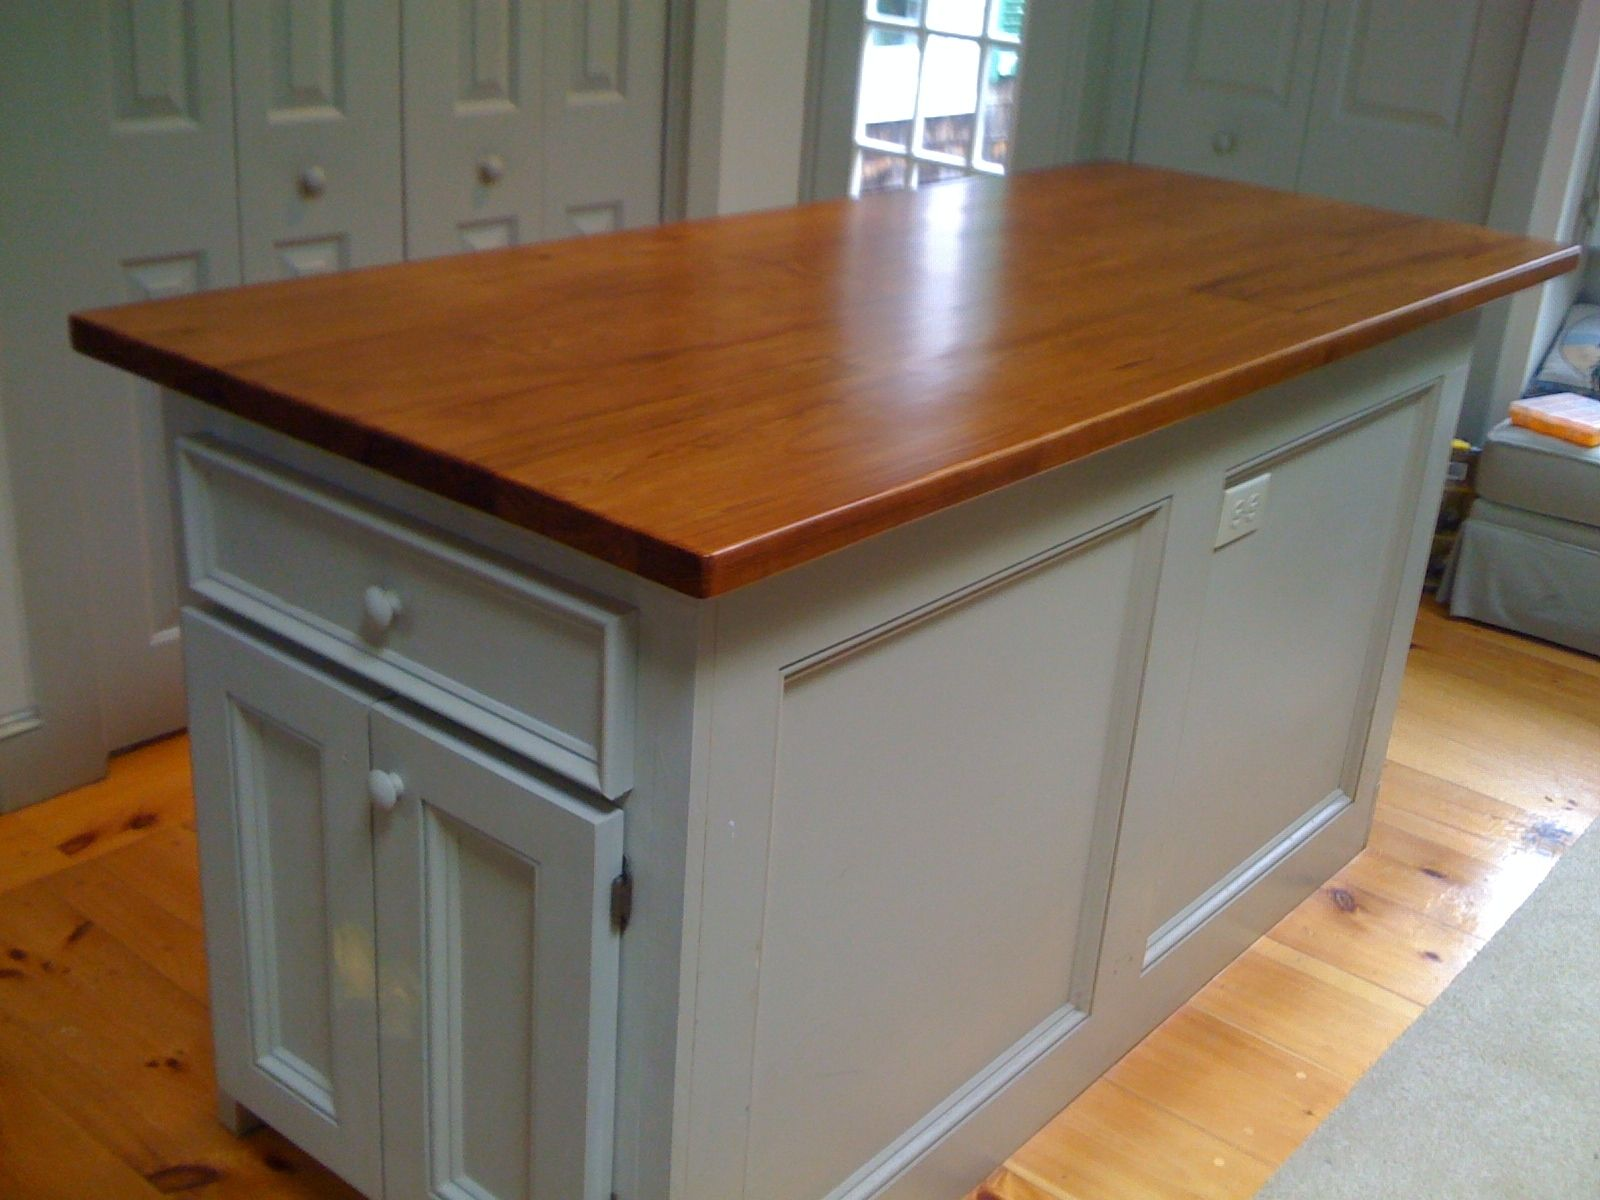 handmade kitchen islands island pendant lighting ideas custom reclaimed wood top by cape cod made